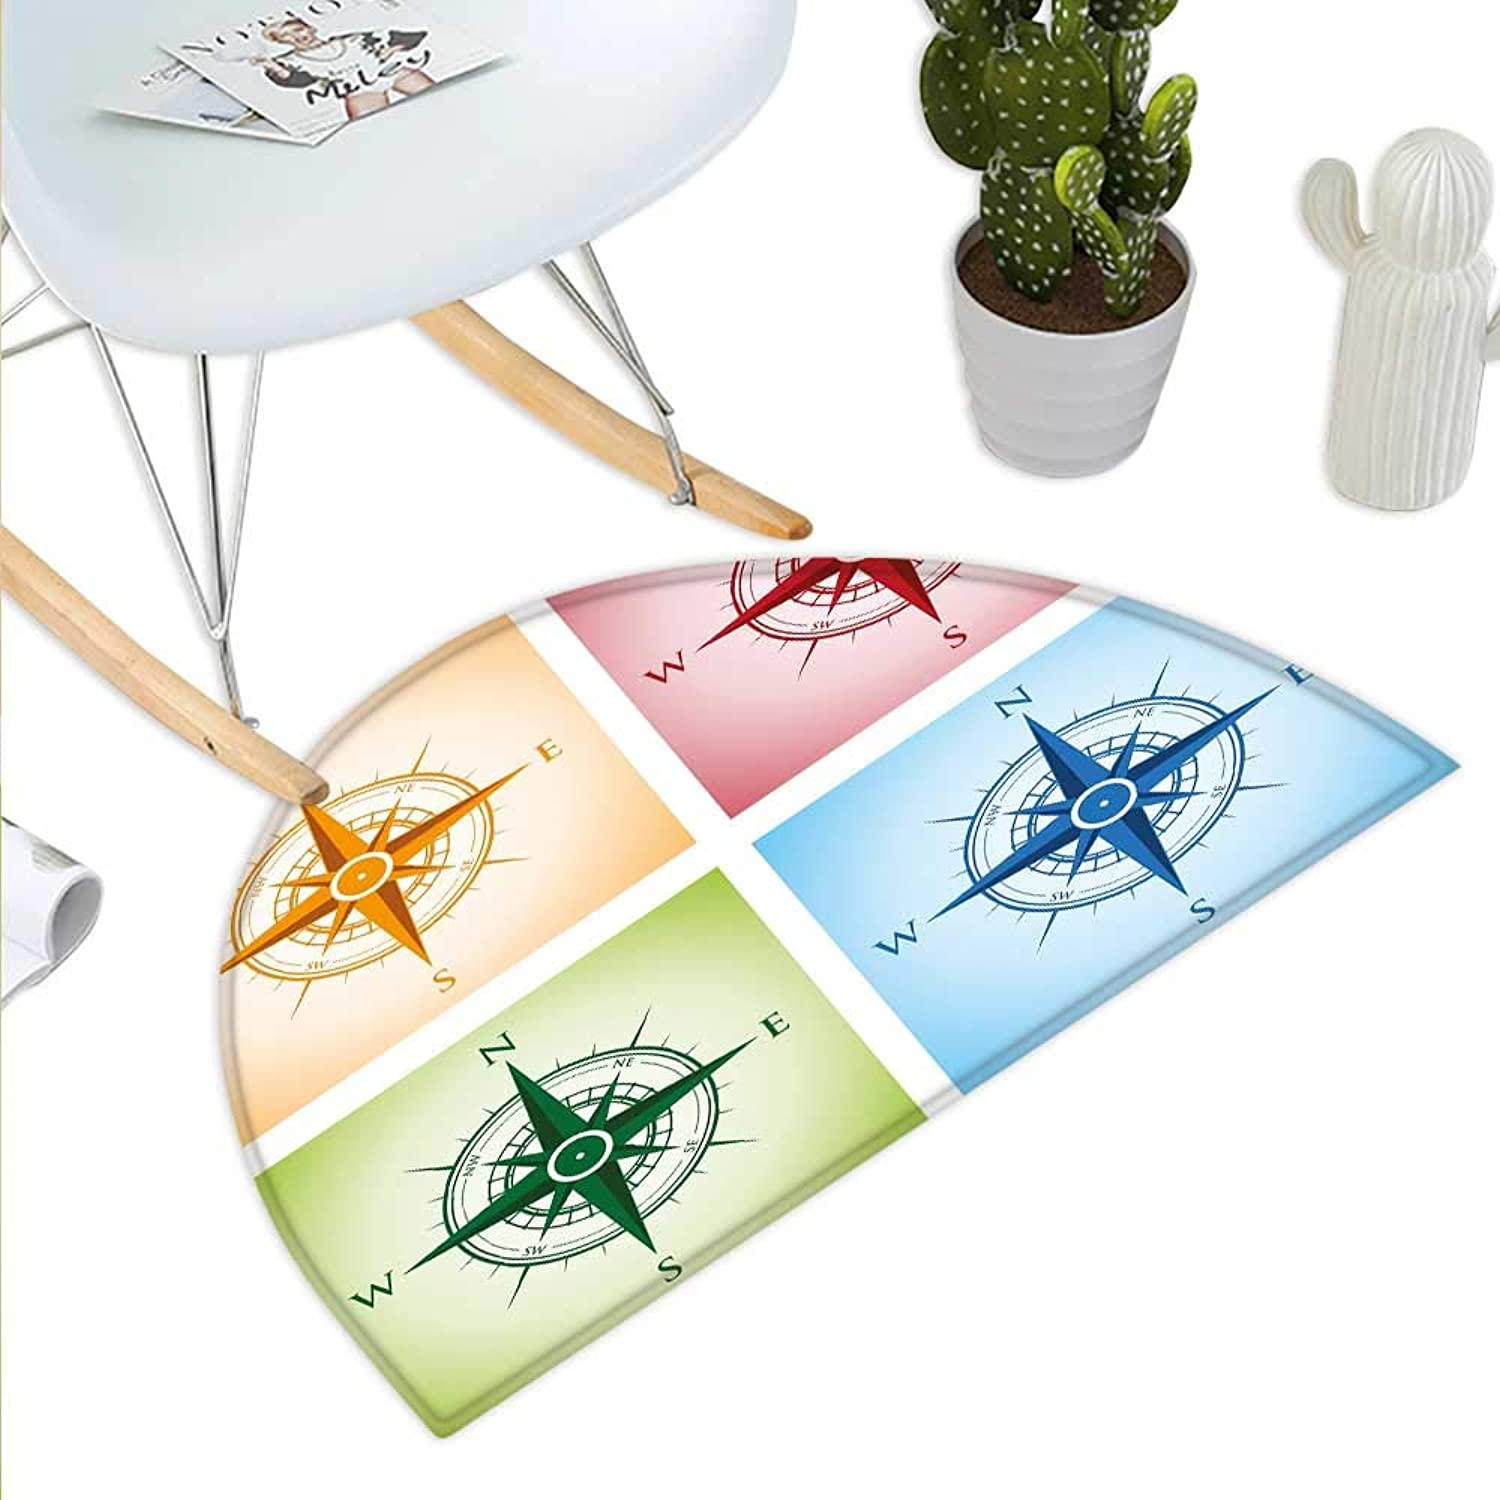 Compass Half Round Door mats colorful Compasses Windpink Finding Directions Discovery Directions Pathfinding Bathroom Mat H 43.3  xD 64.9  Multicolor